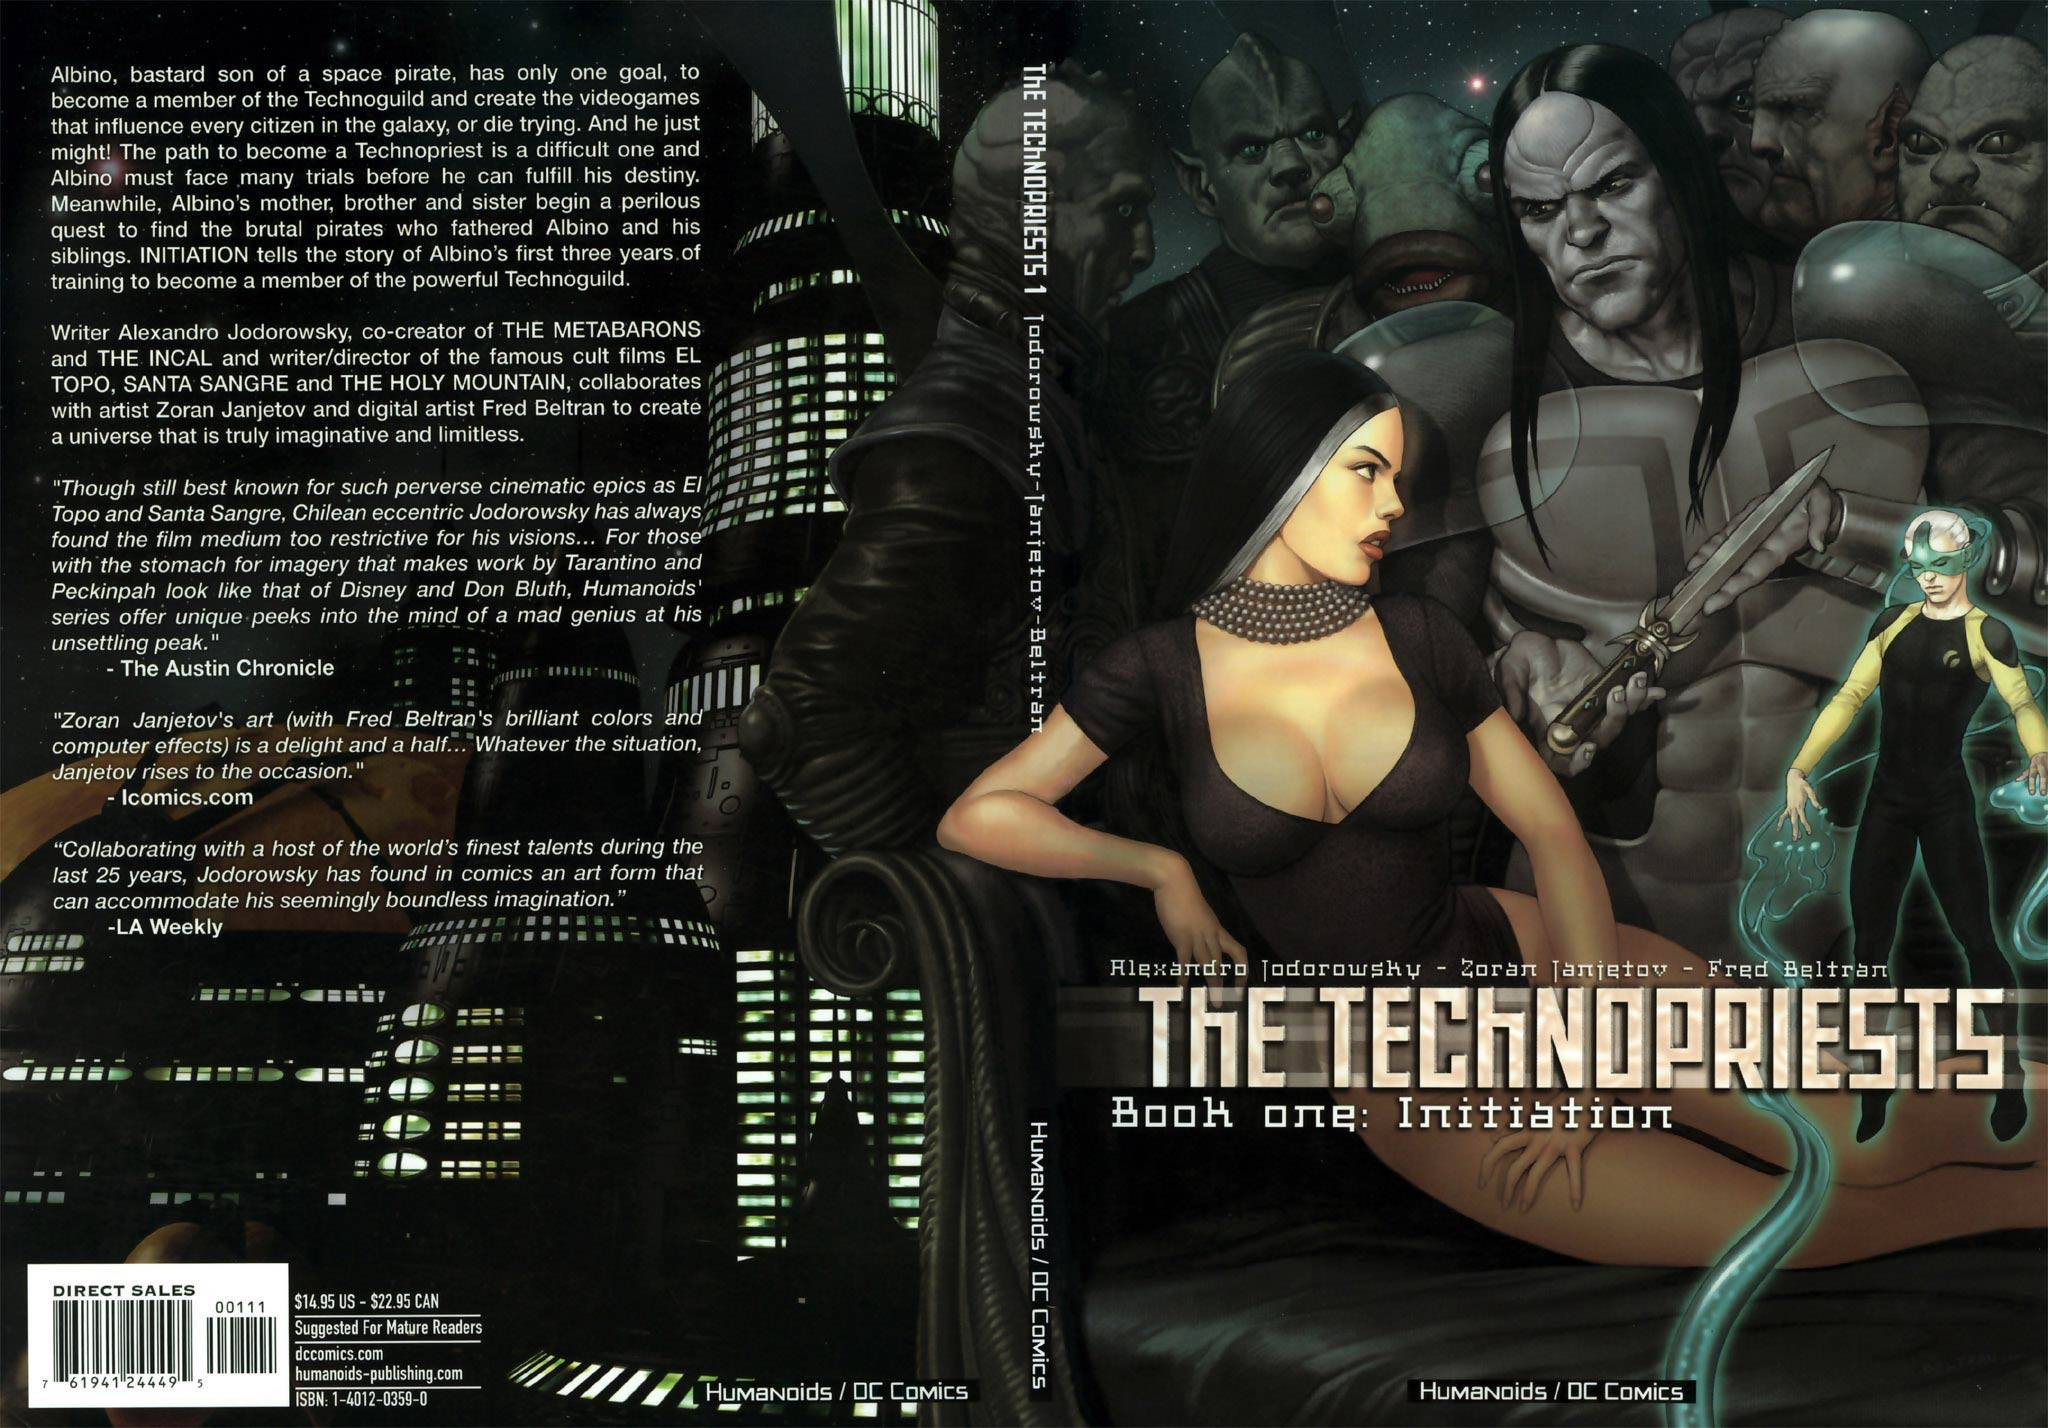 The Technopriests : Book One (Initiation) & Book Two (Rebelion)